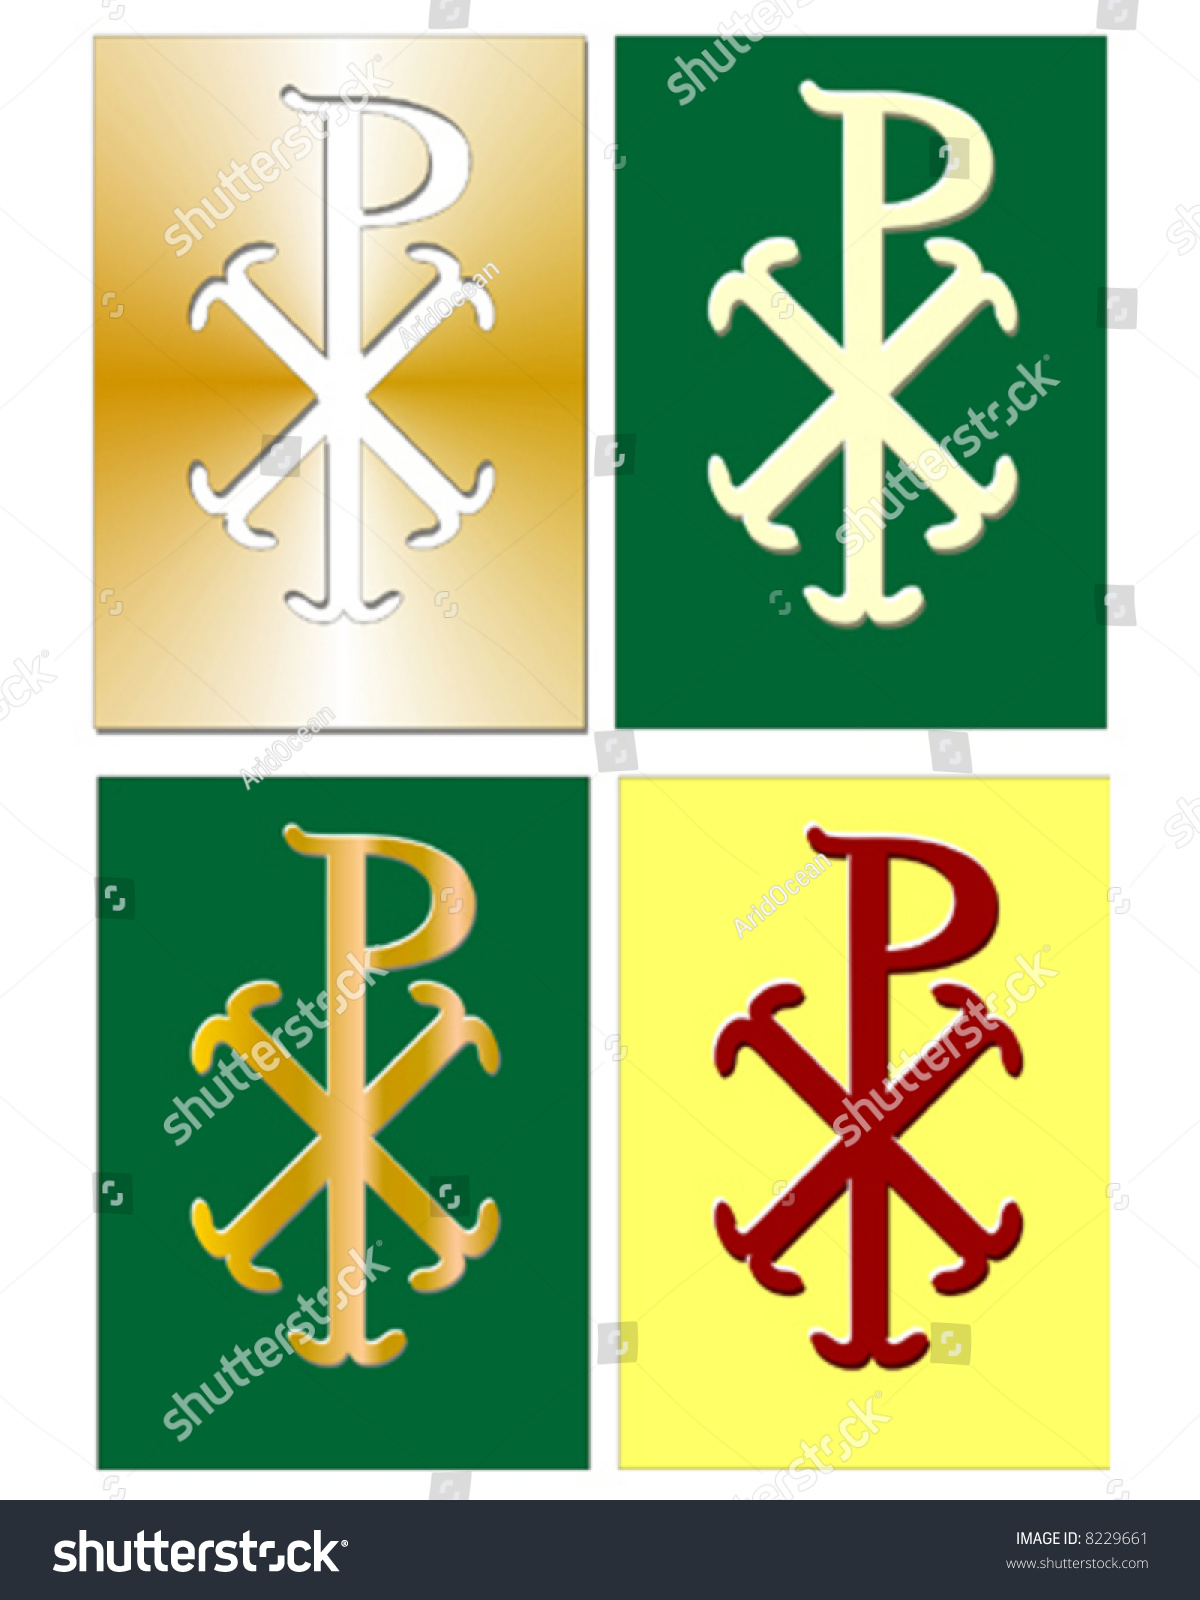 Christian chi rho symbol for christ stock vector 8229661 shutterstock christian chi rho symbol for christ in different colors buycottarizona Images